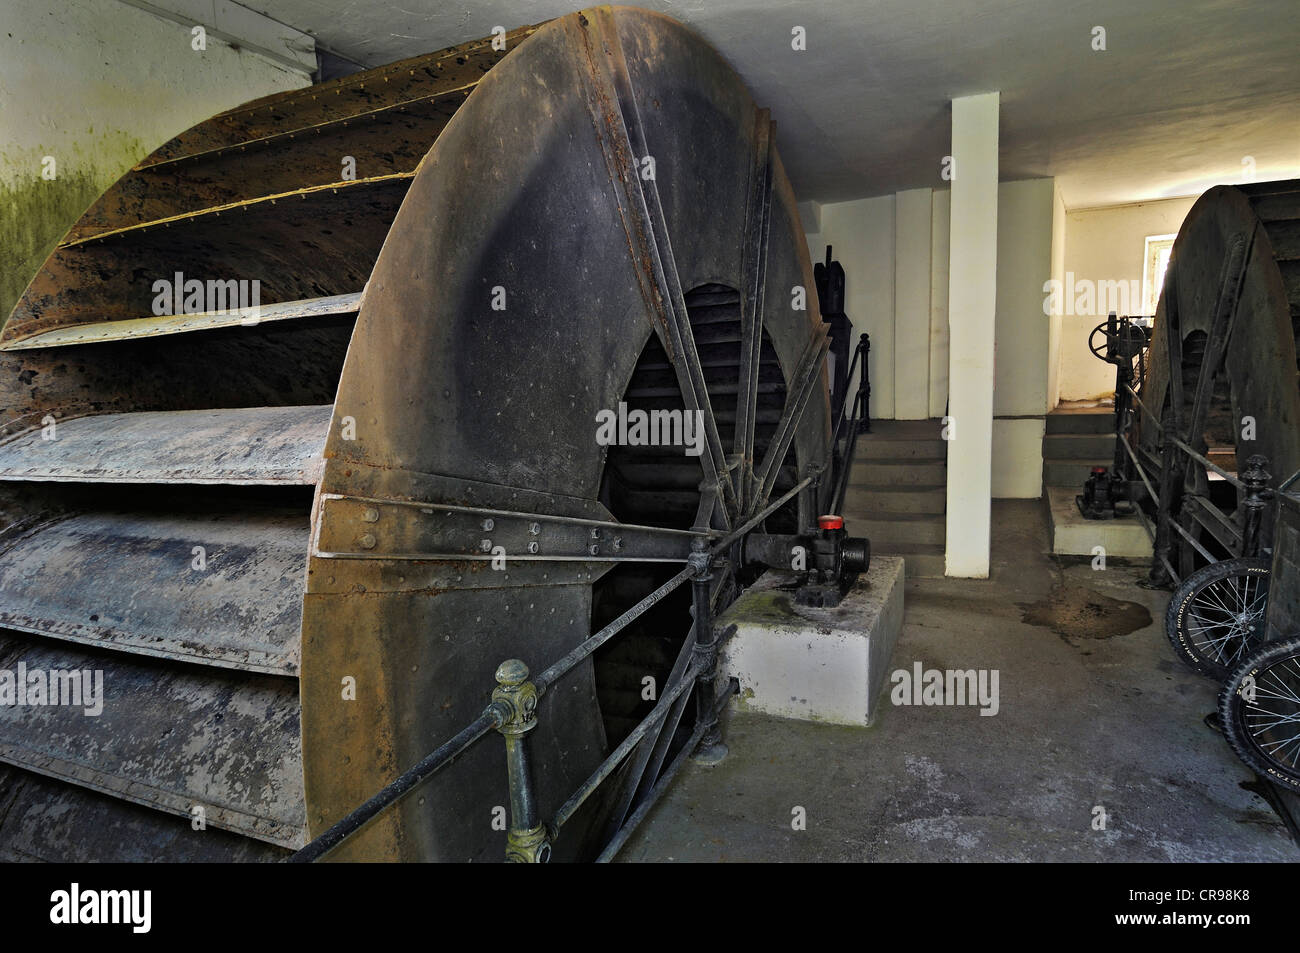 Paddle wheels, baroque pumping station in the Gruenes Brunnenhaus well house, Nymphenburg Park, Munich, Bavaria, - Stock Image